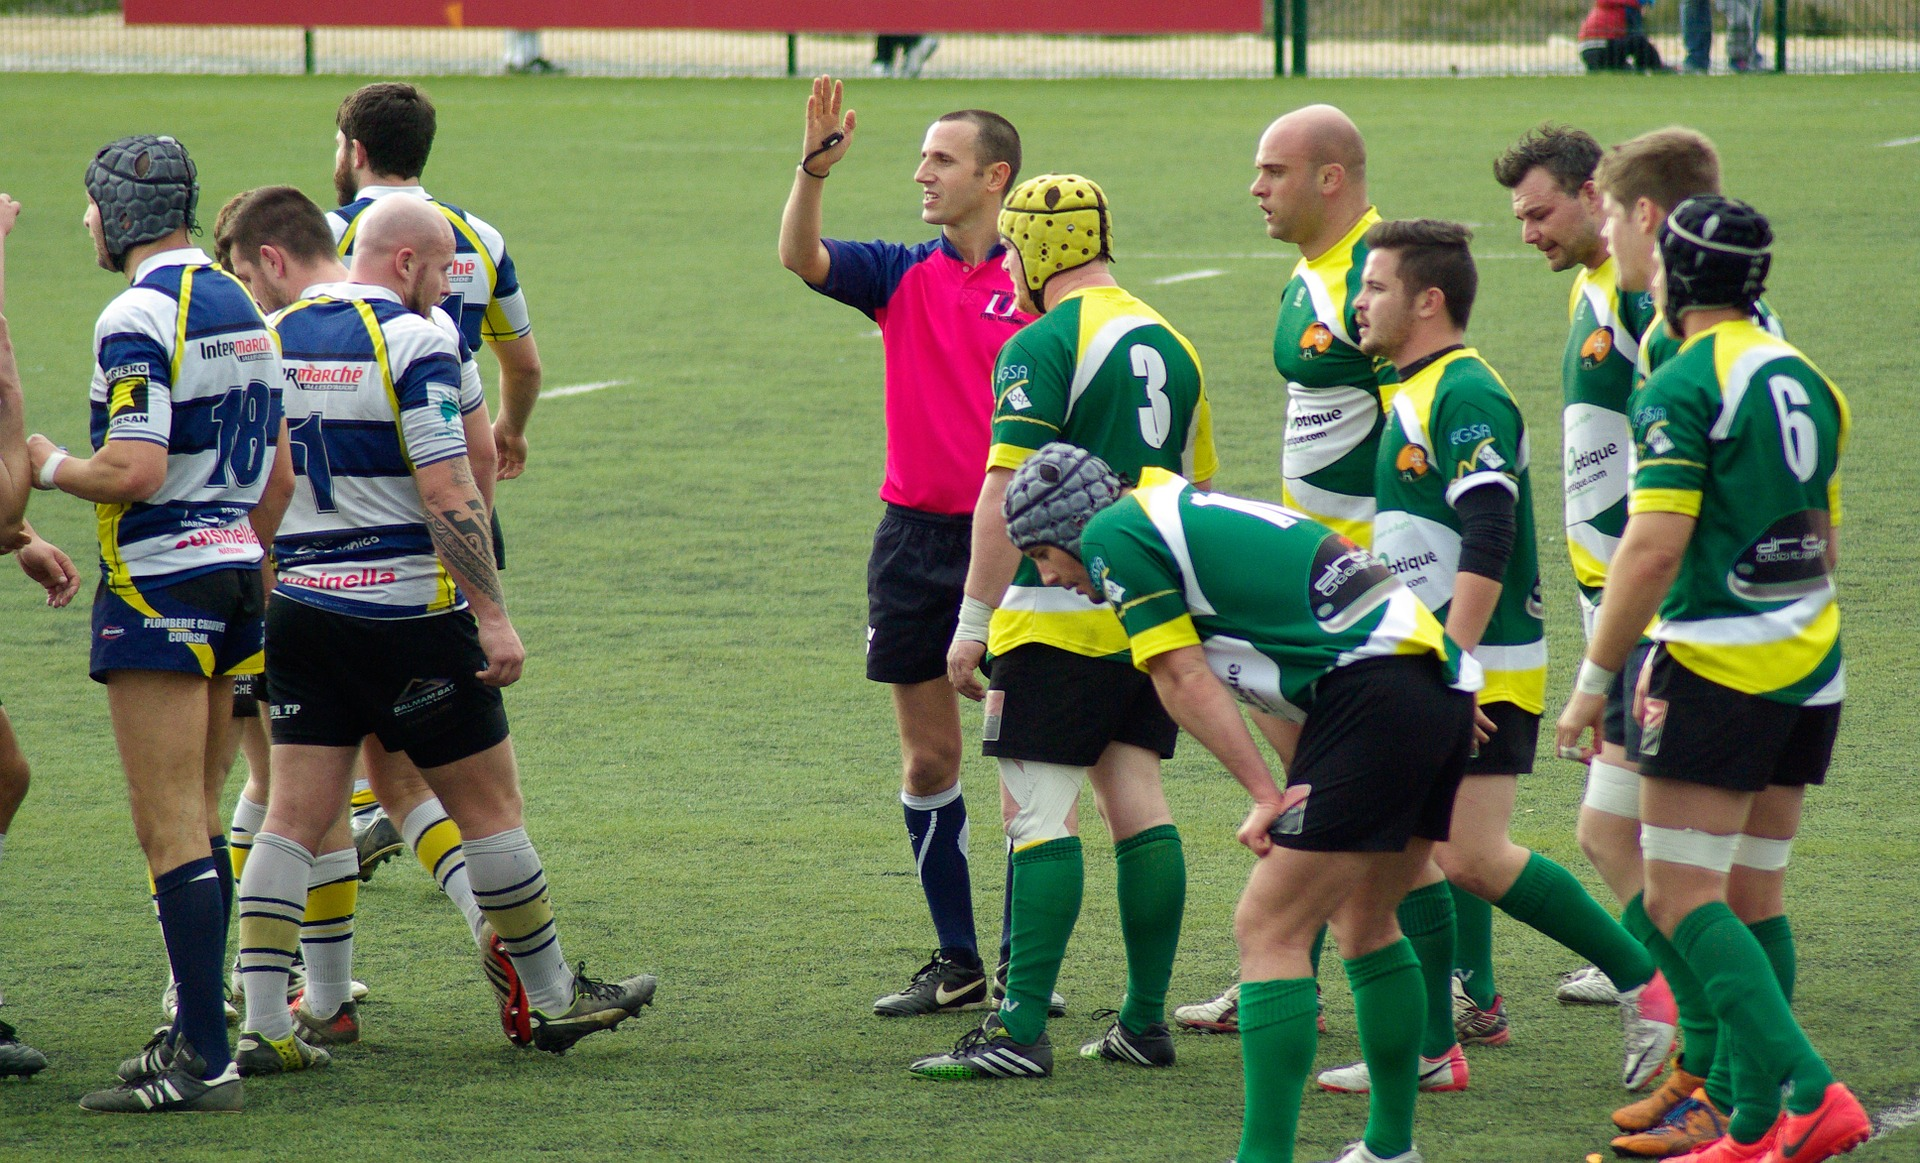 rugby-655027_1920